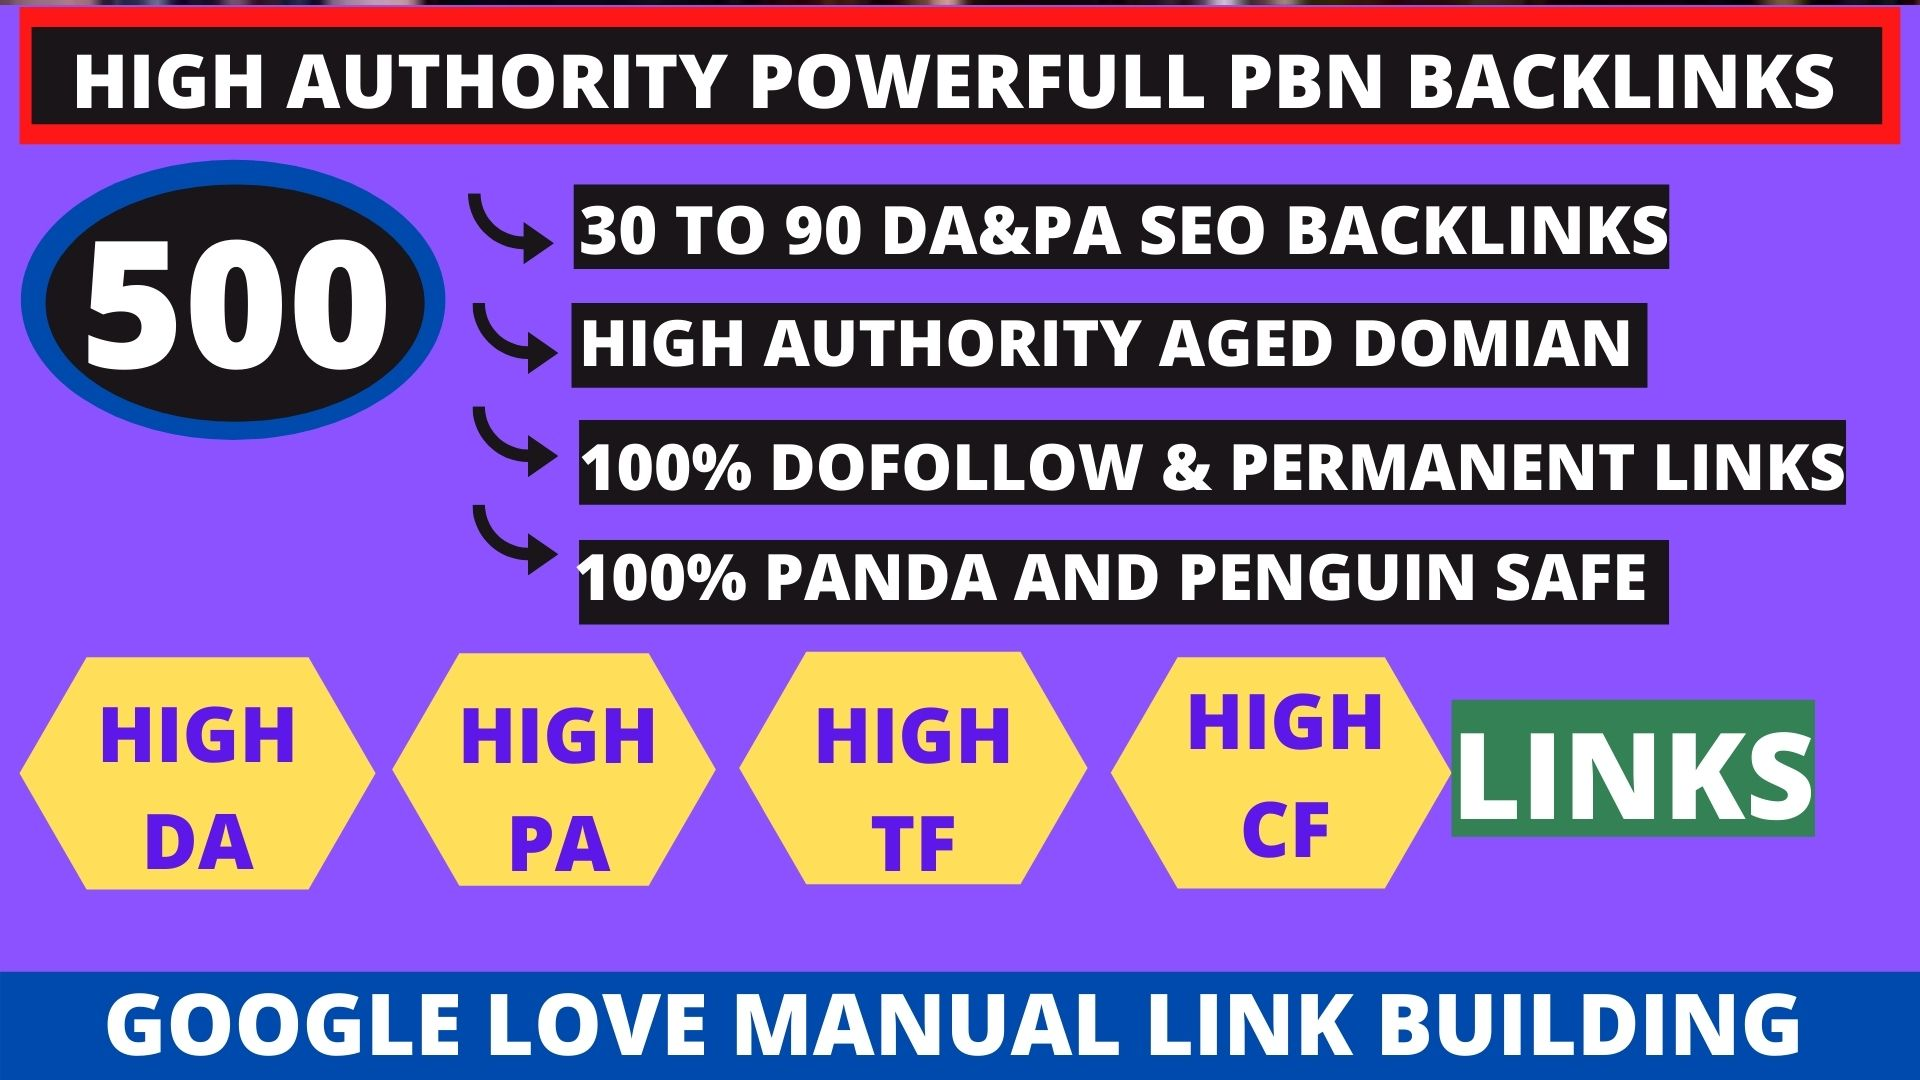 Get powerfull 500+ pbn backlink with high DA/PA/TF/CF on your homepage with unique website